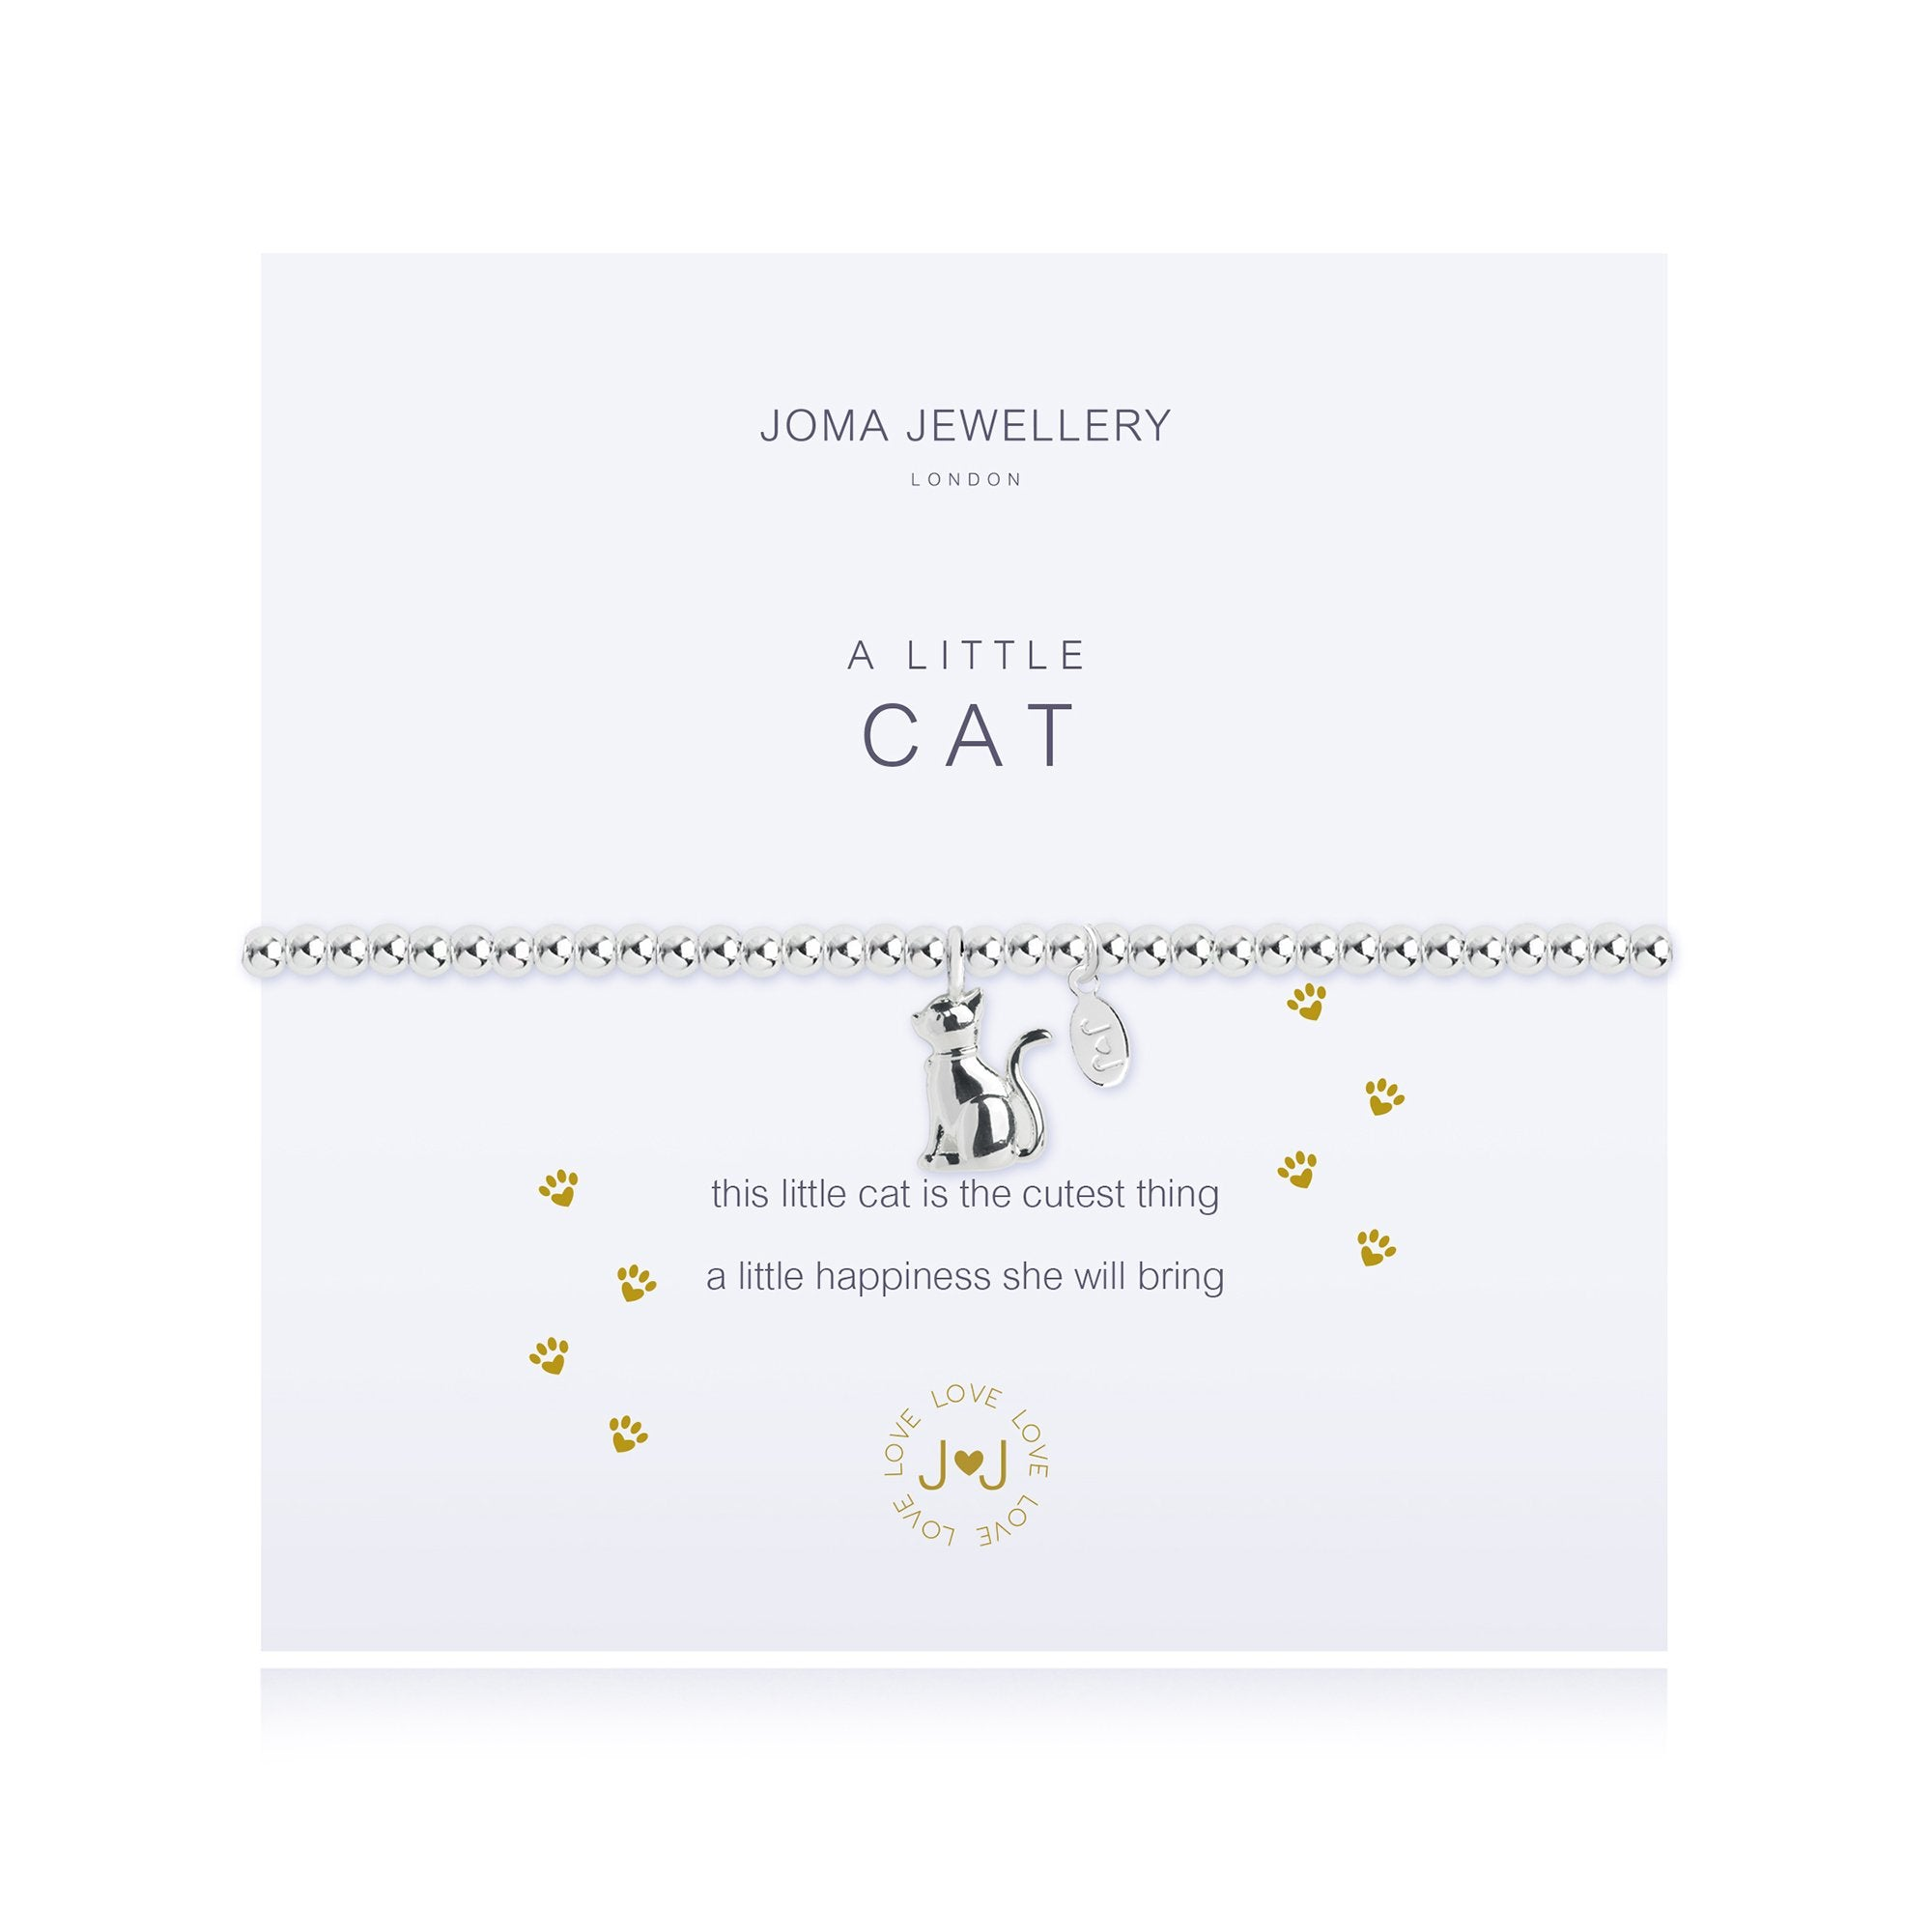 Joma Jewellery - A Little Cat Bracelet